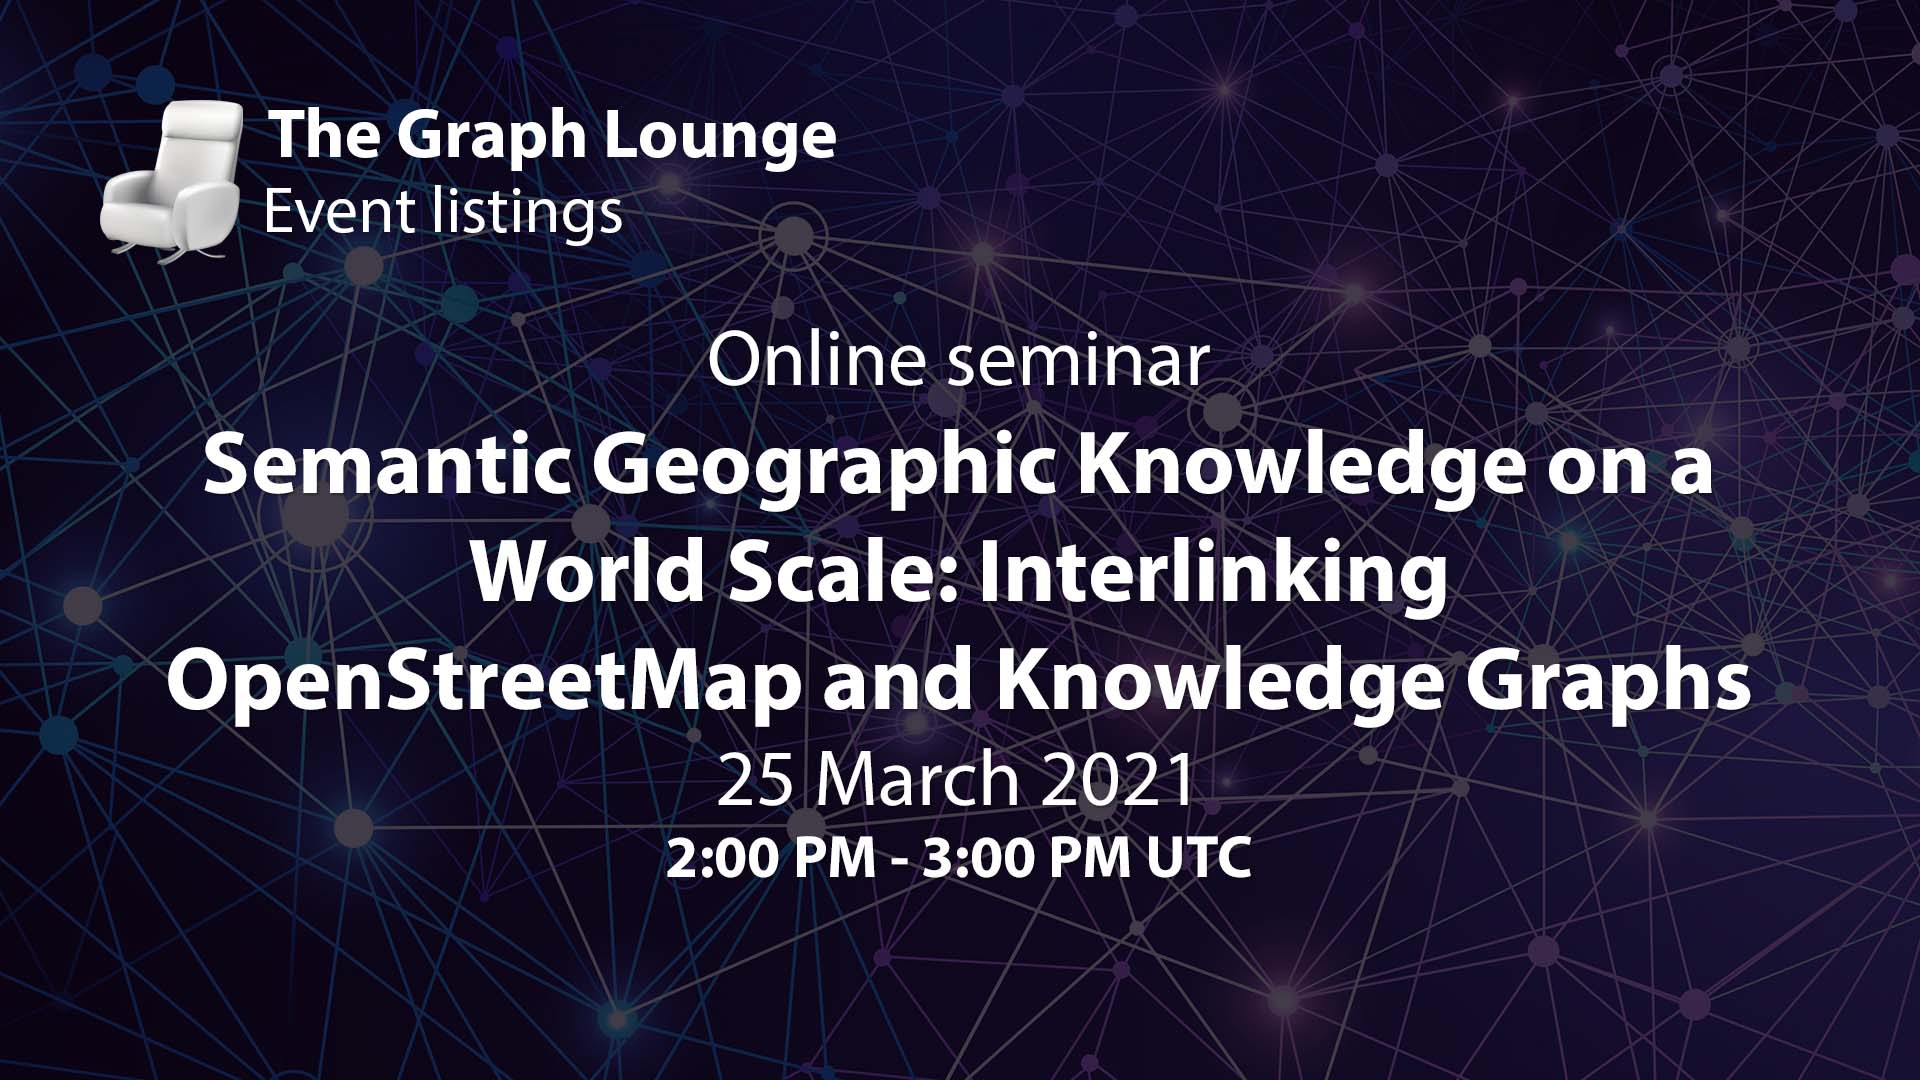 Semantic Geographic Knowledge on a World Scale: Interlinking OpenStreetMap and Knowledge Graphs